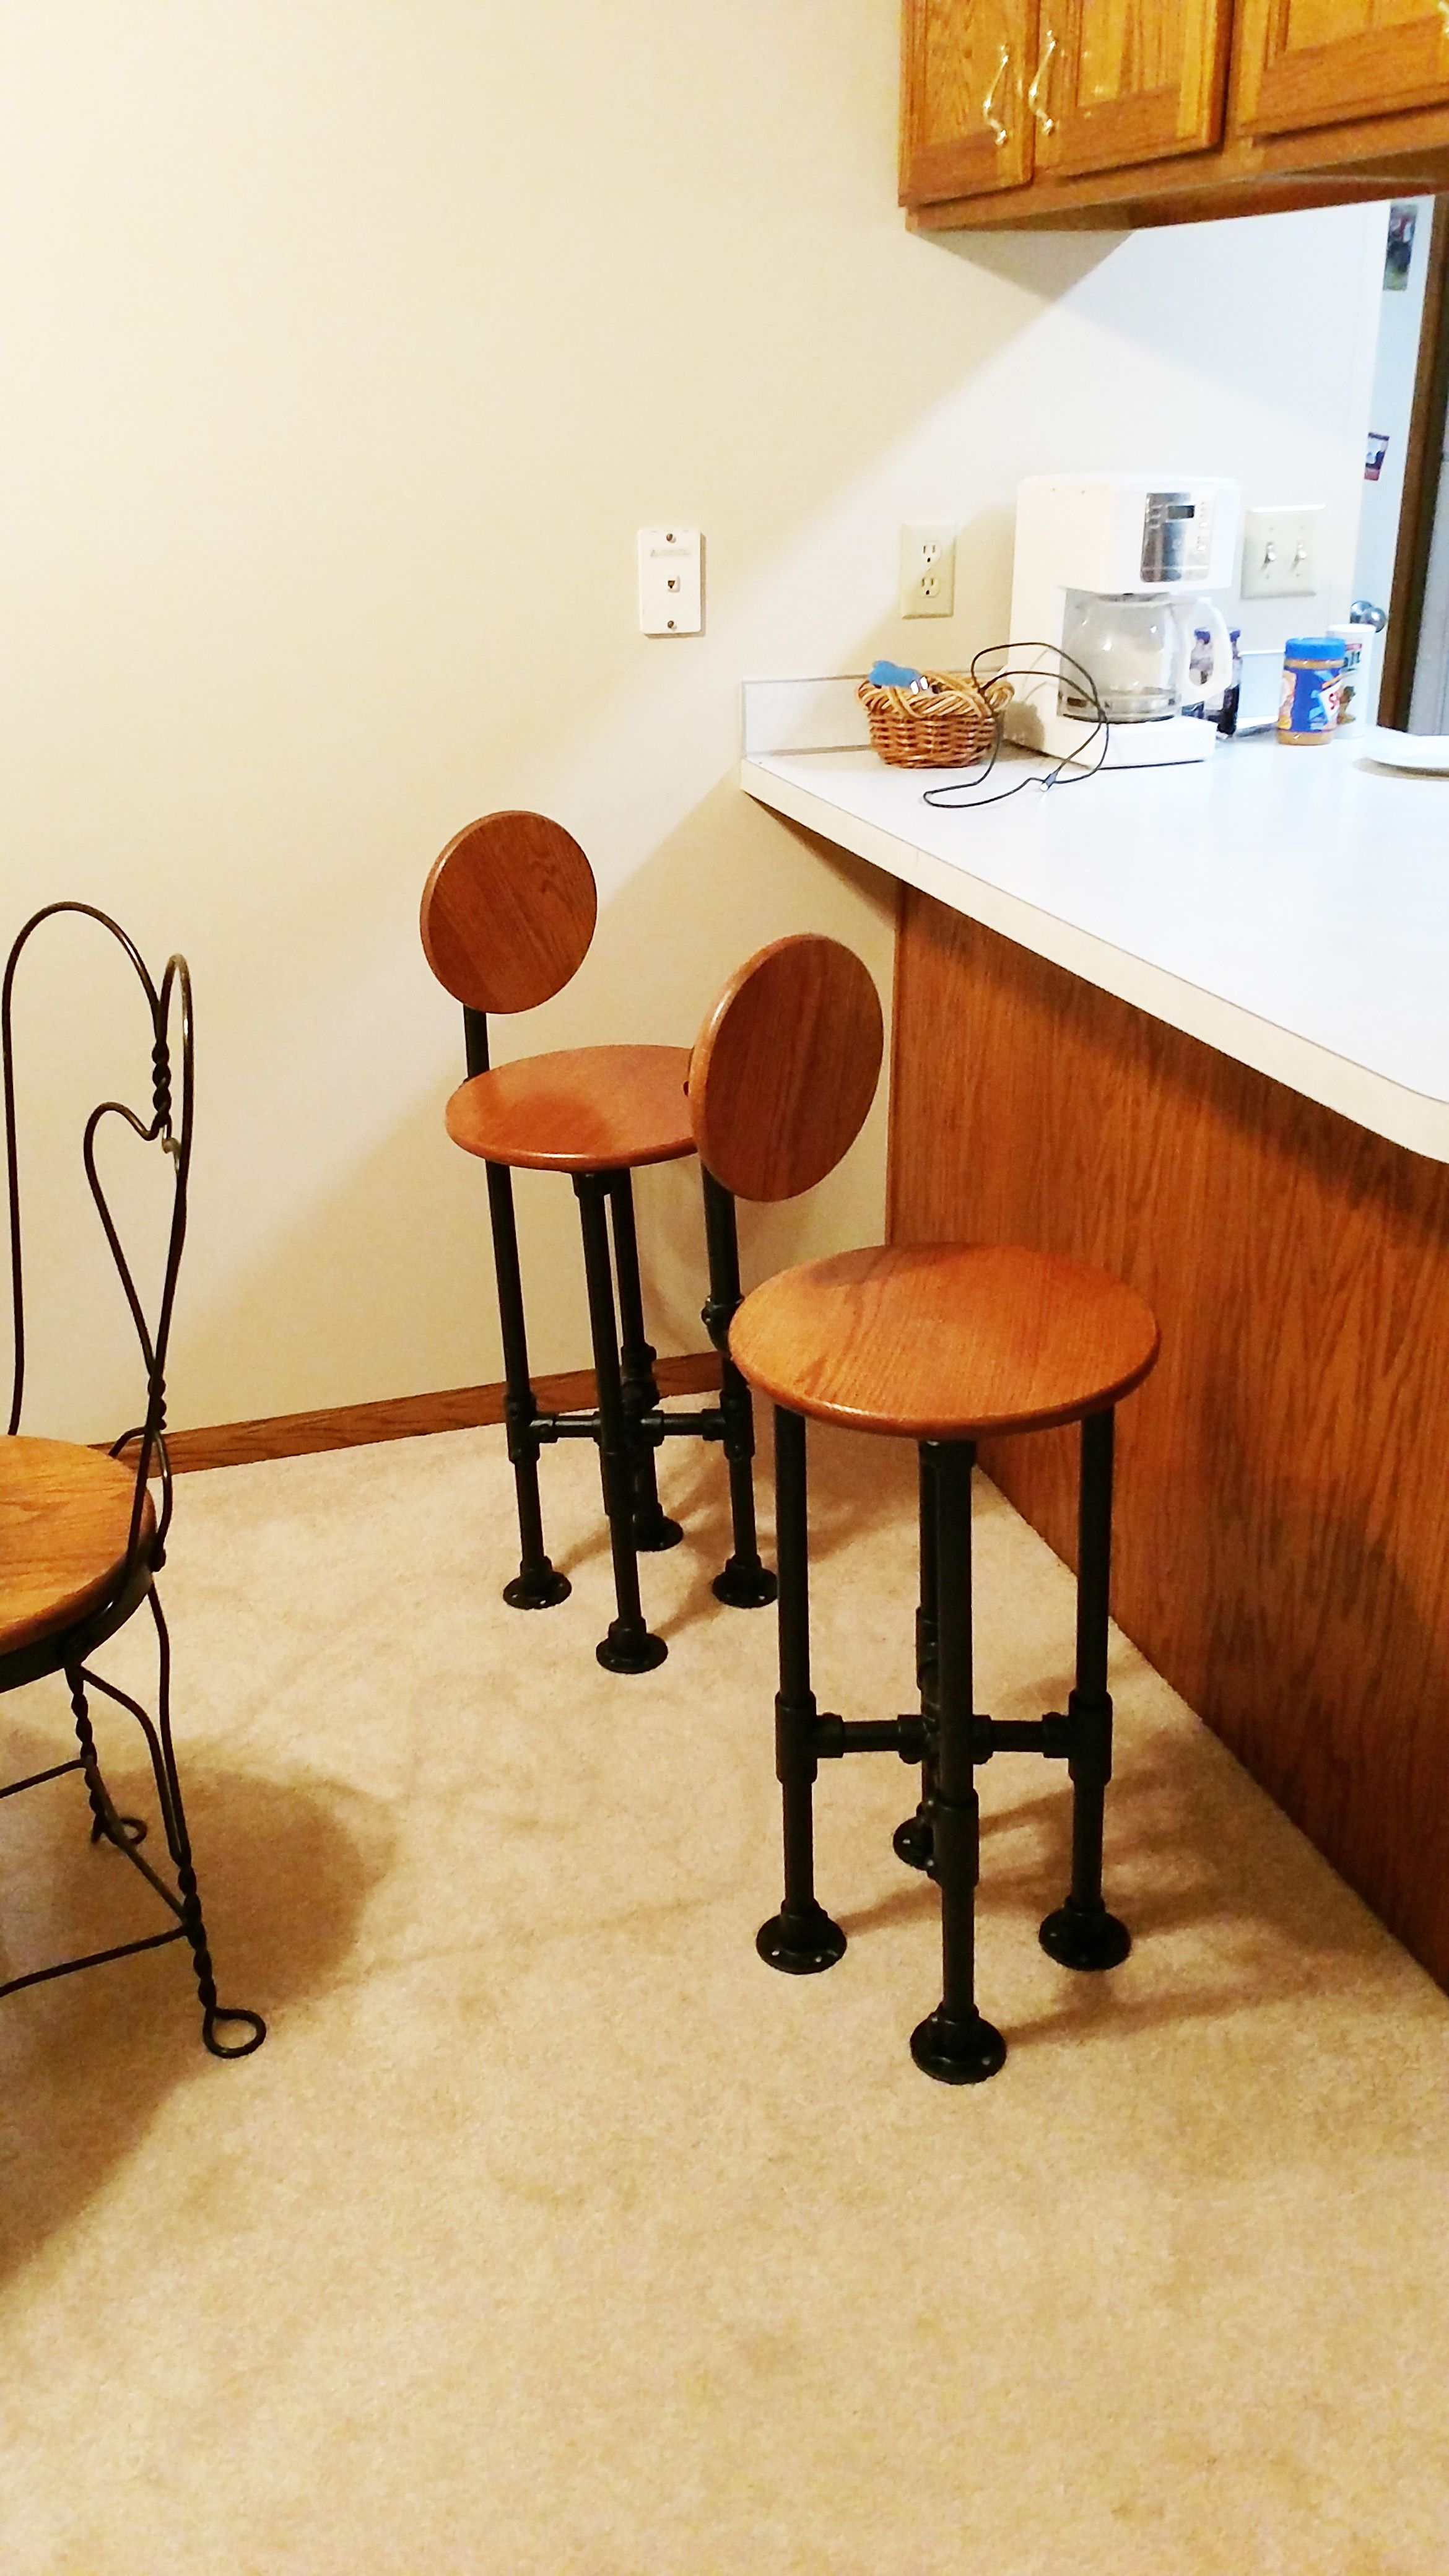 Pin On Pipe Stools Chairs